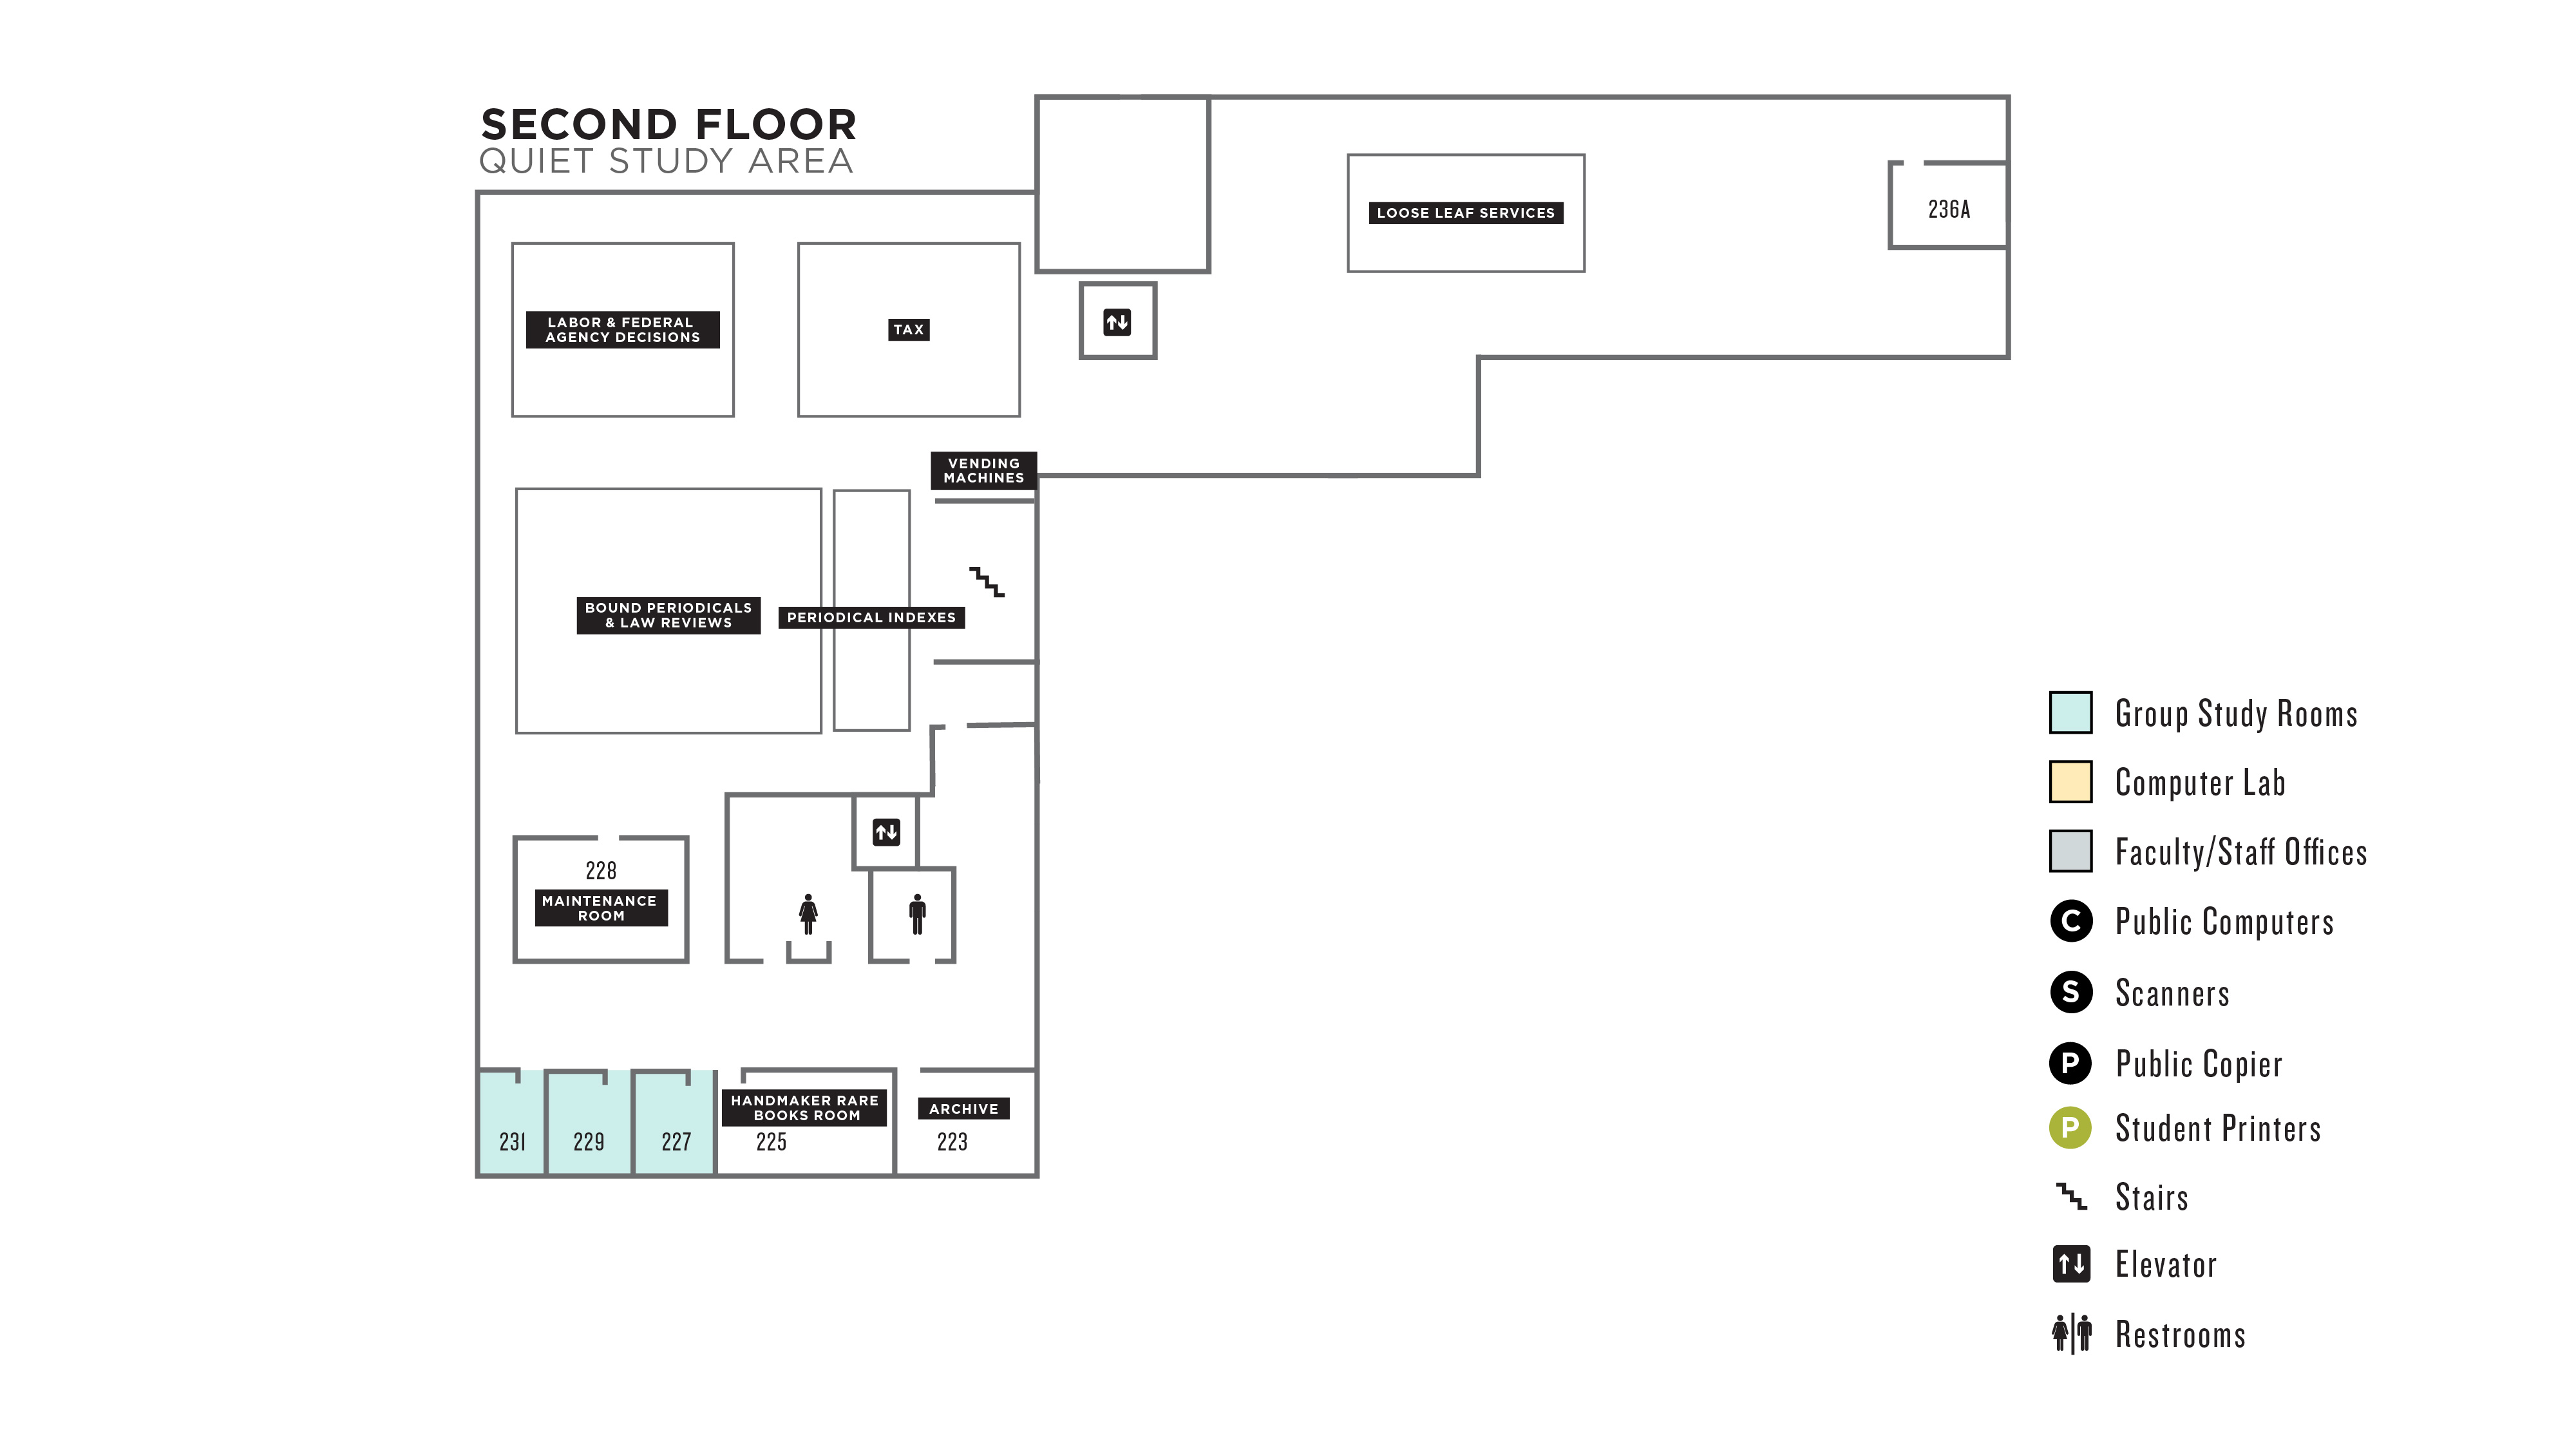 Floorplan of the 2nd floor of the Law Library.